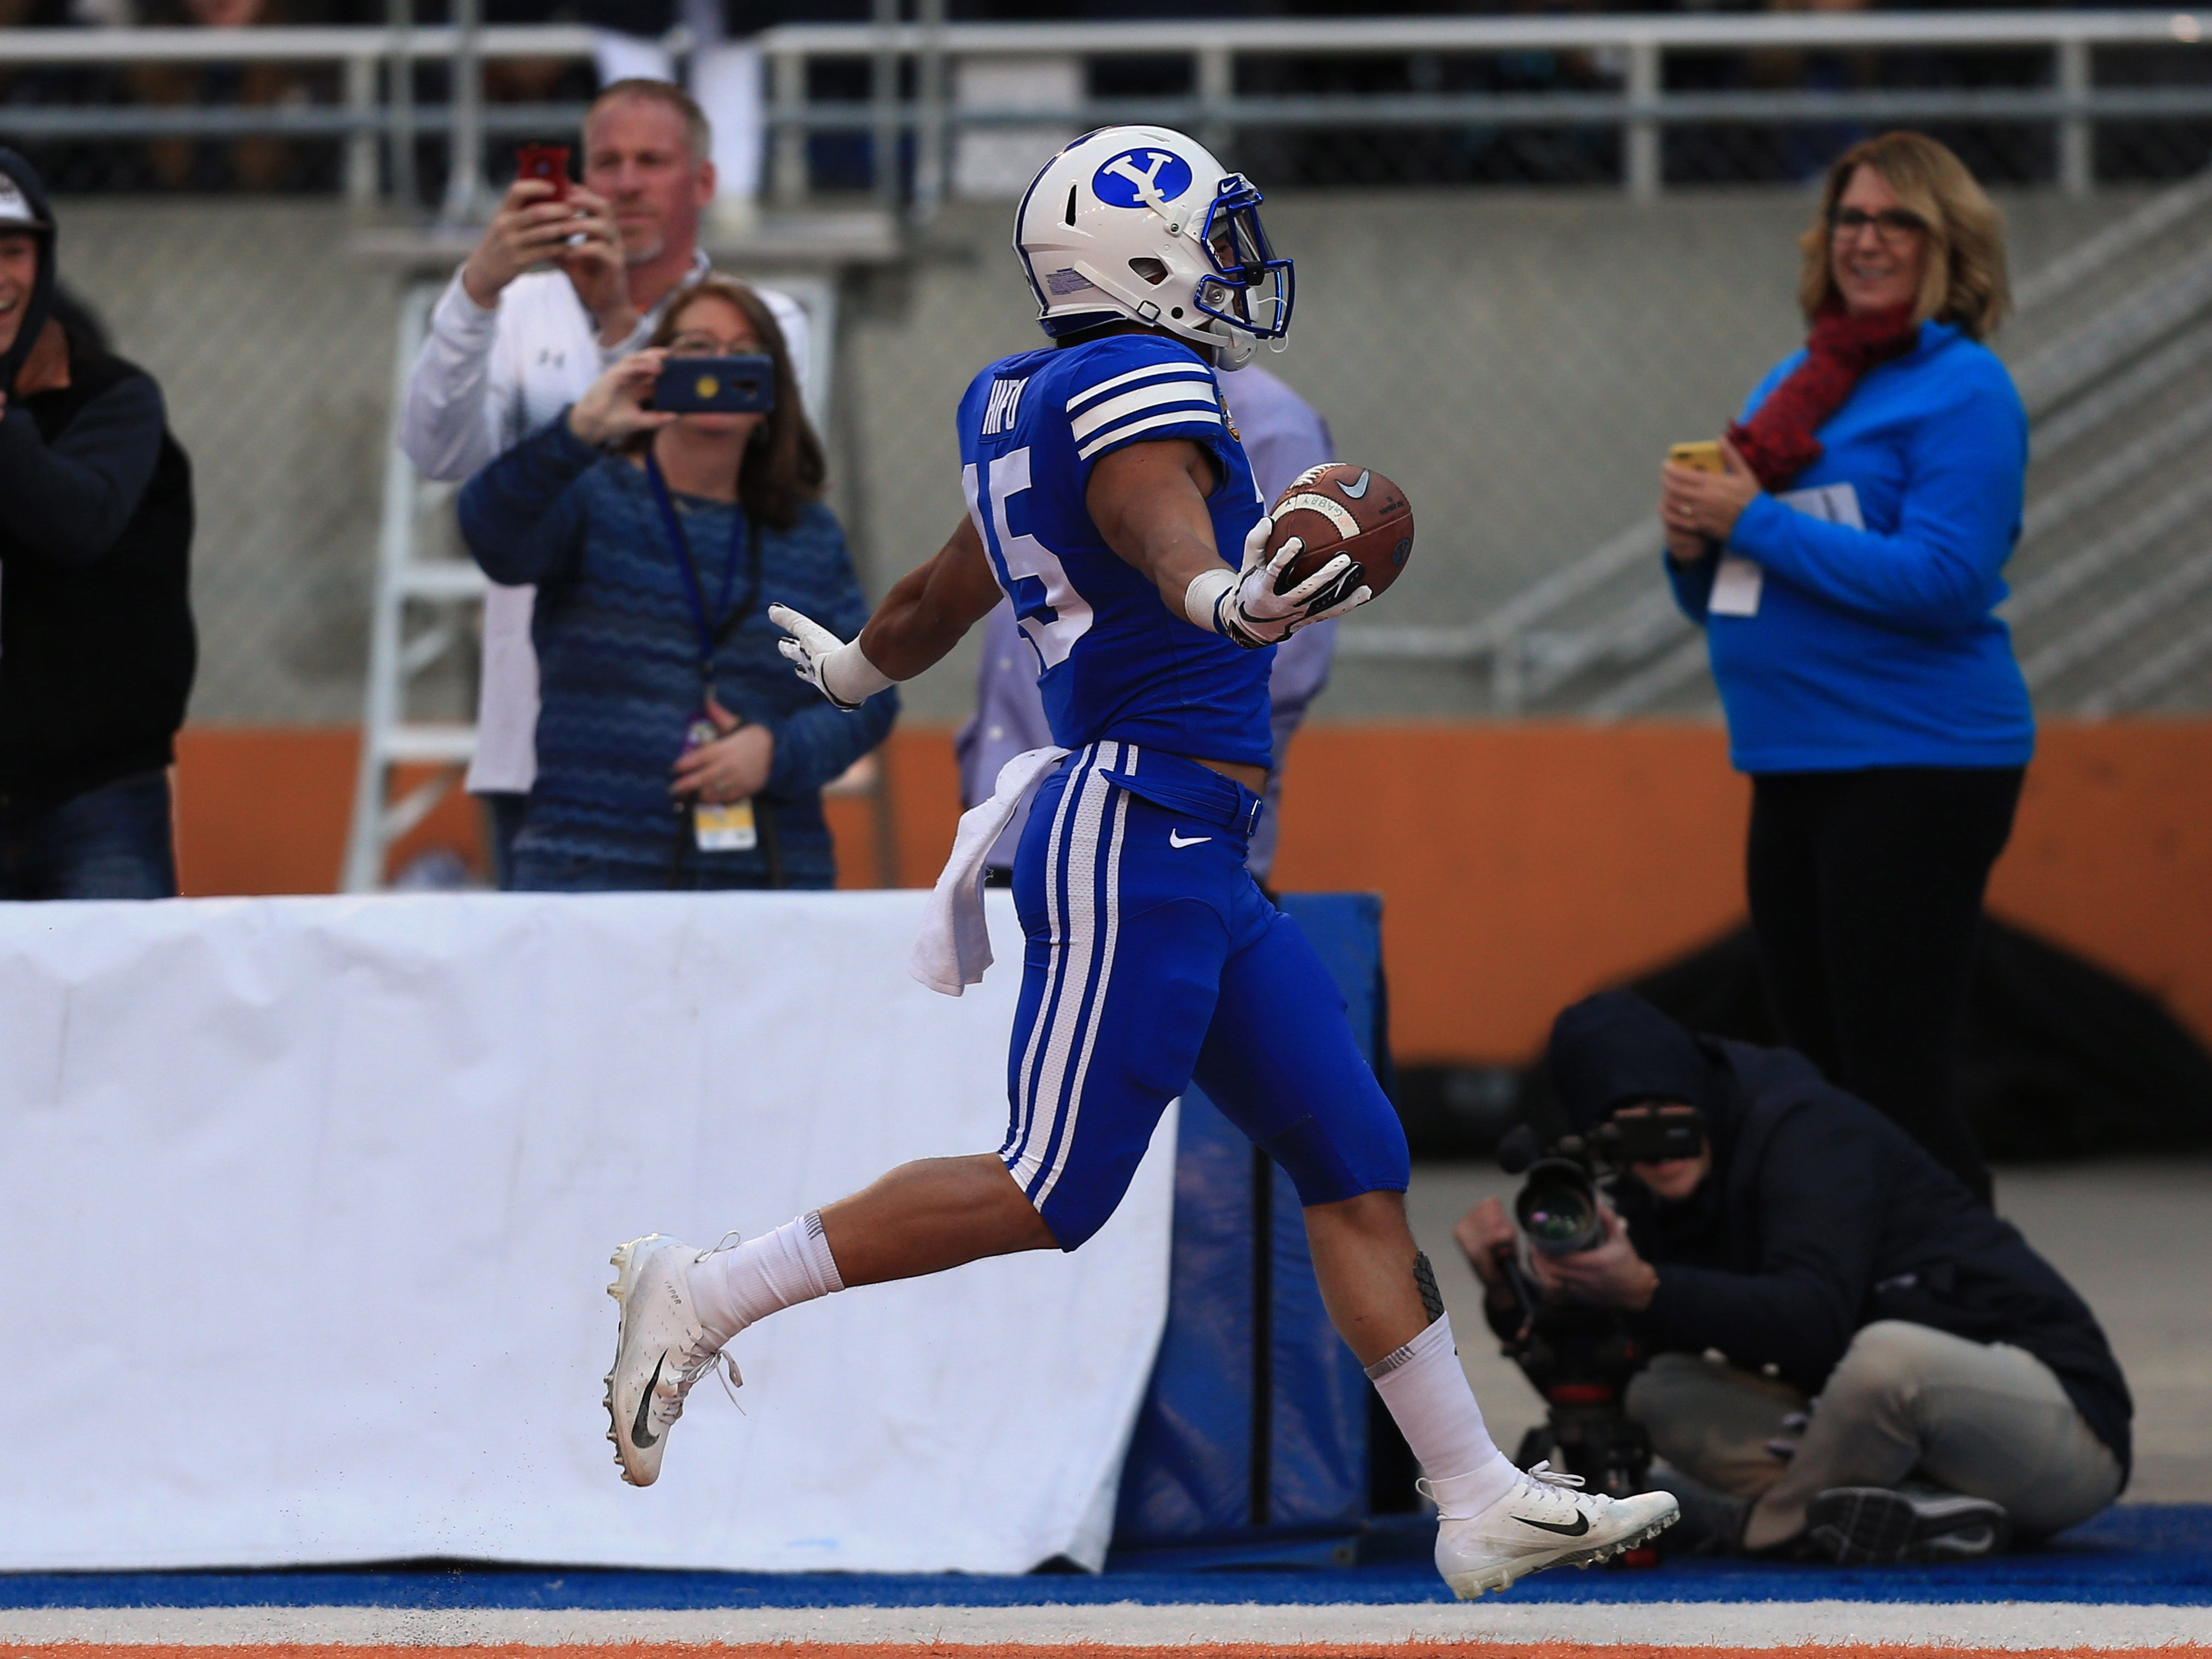 Dec 21, 2018; Boise, ID, United States; Brigham Young Cougars wide receiver Aleva Hifo (15) scores a 70-yard touchdown against the Western Michigan Broncos during the second half of the 2018 Potato Bowl at Albertsons Stadium.